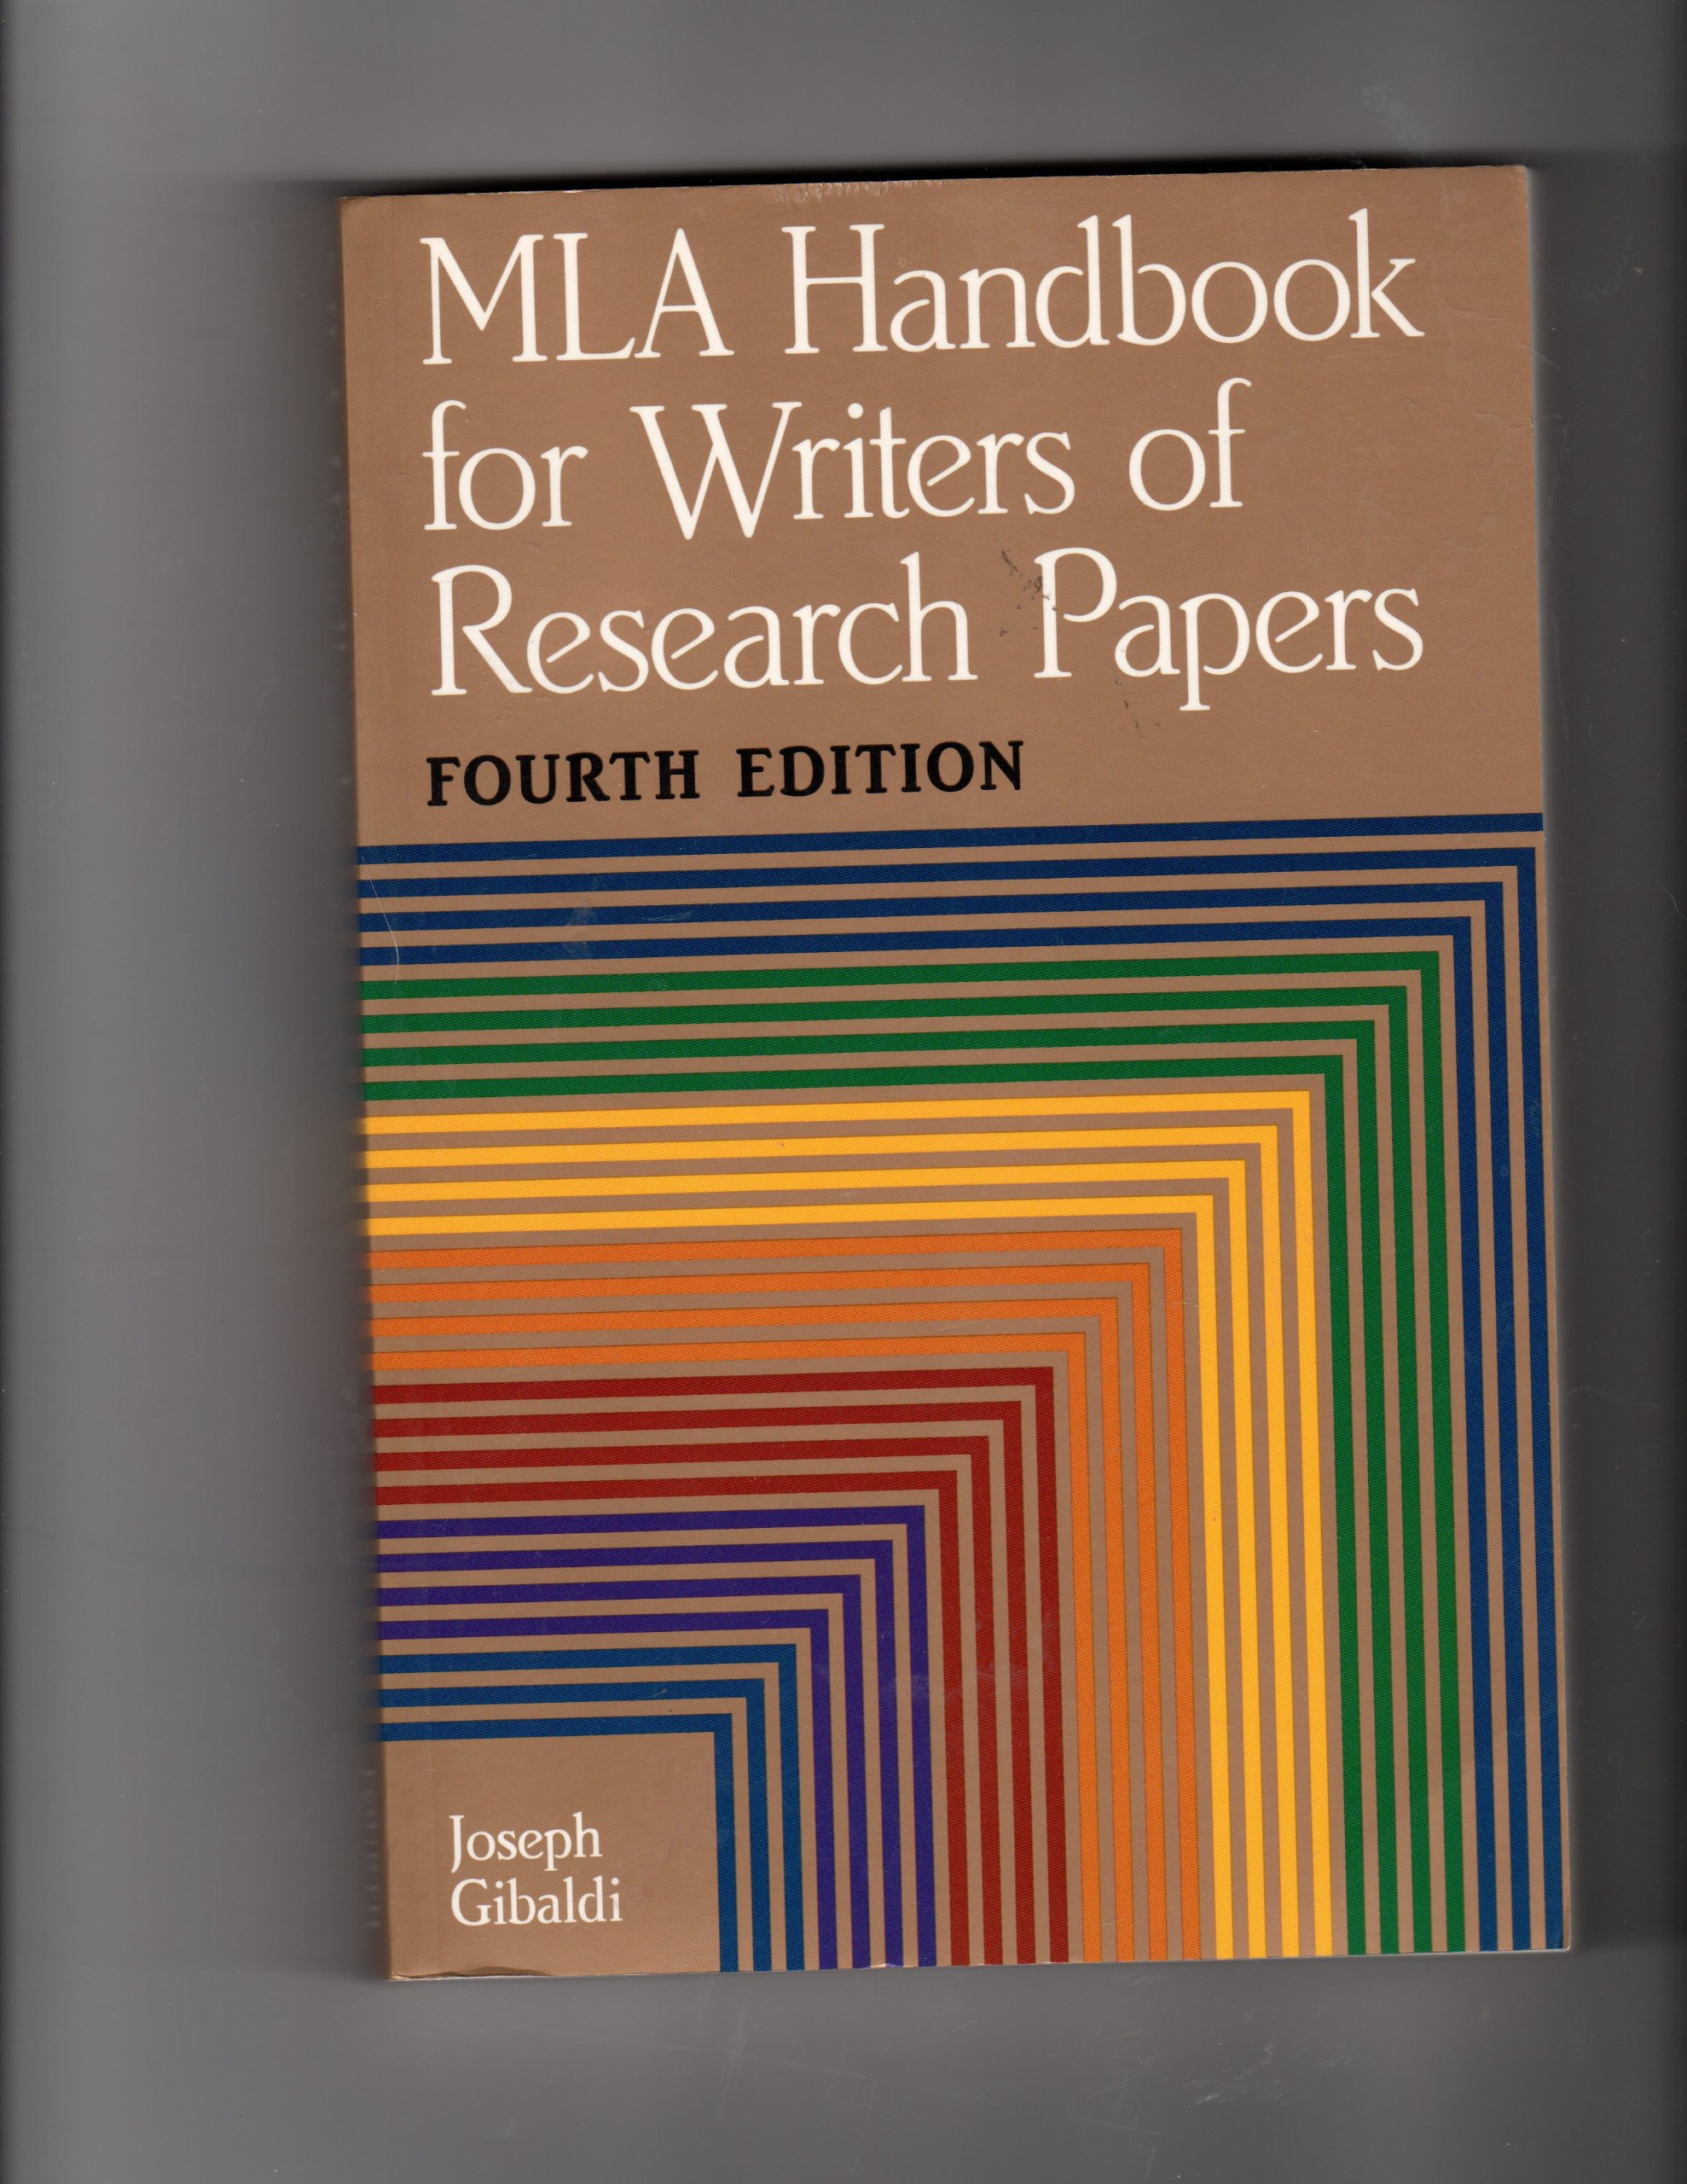 003 91or7esc2gl Research Paper The Mla Handbook For Writers Of Fearsome Papers 8th Edition 7th 2009 (8th Ed.) Full